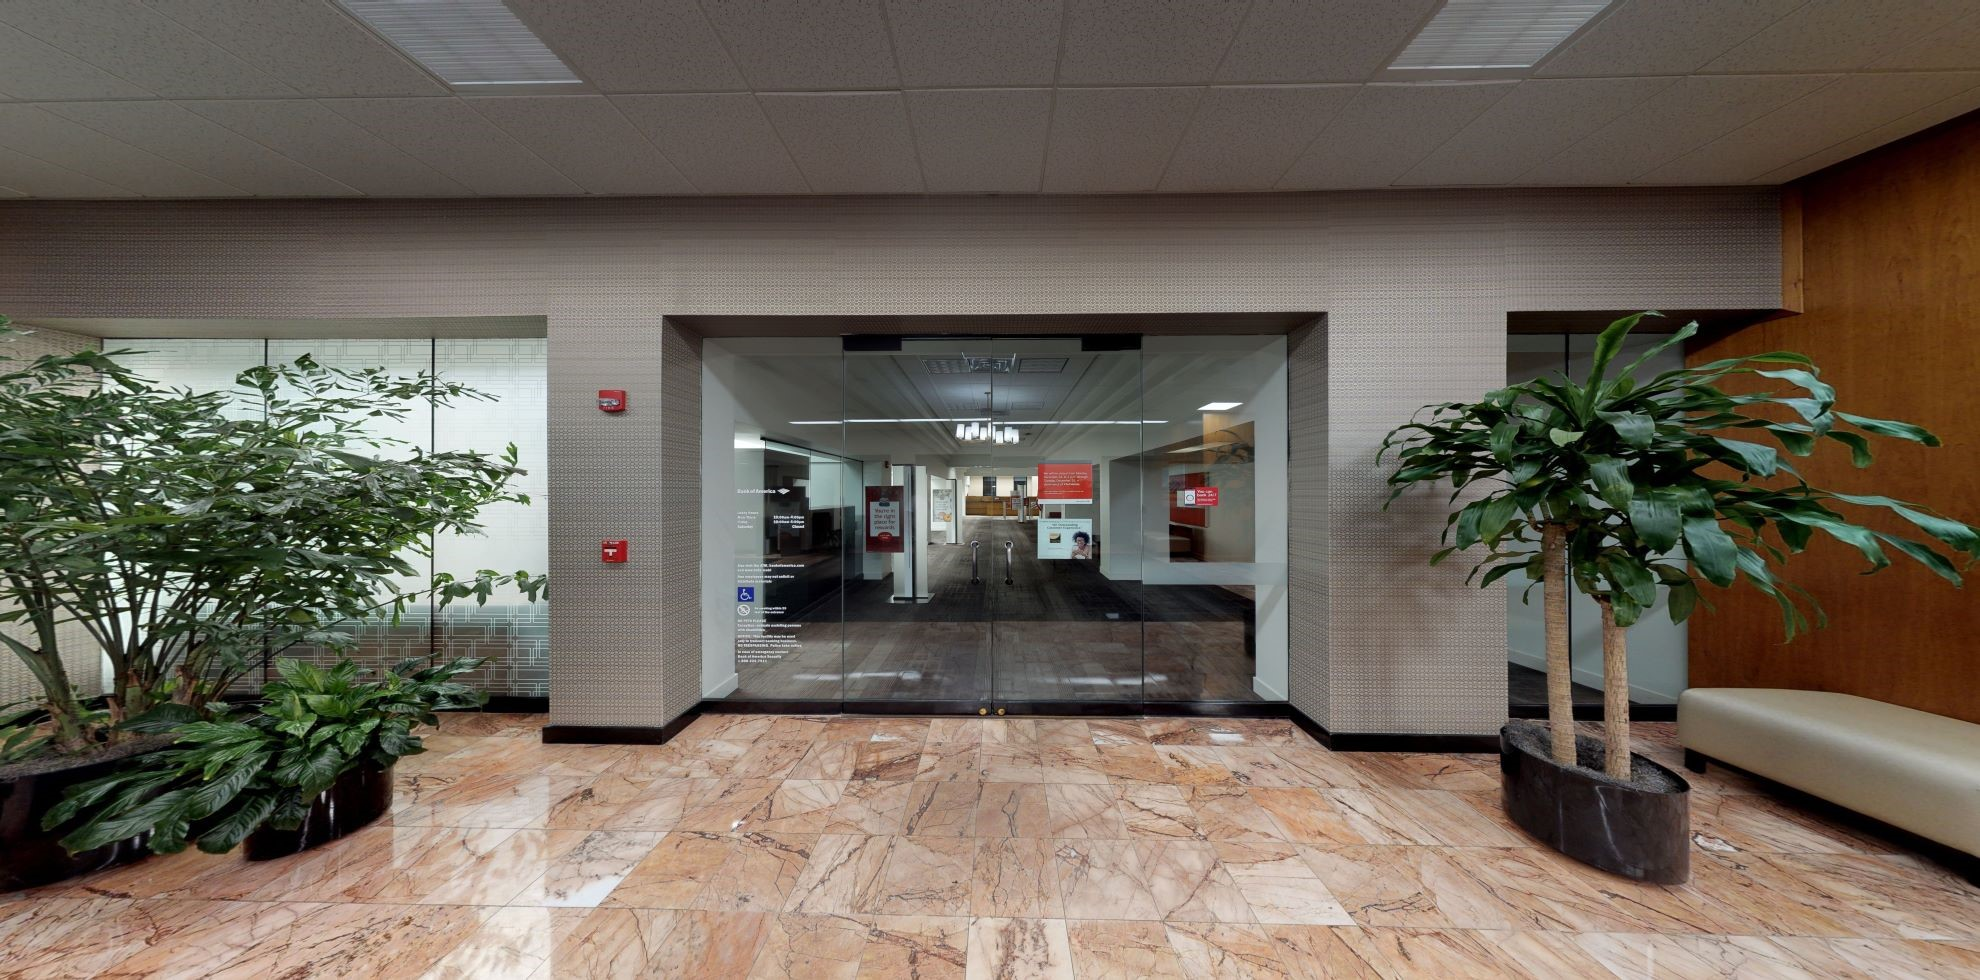 Bank of America financial center with drive-thru ATM   315 S Calhoun St, Tallahassee, FL 32301